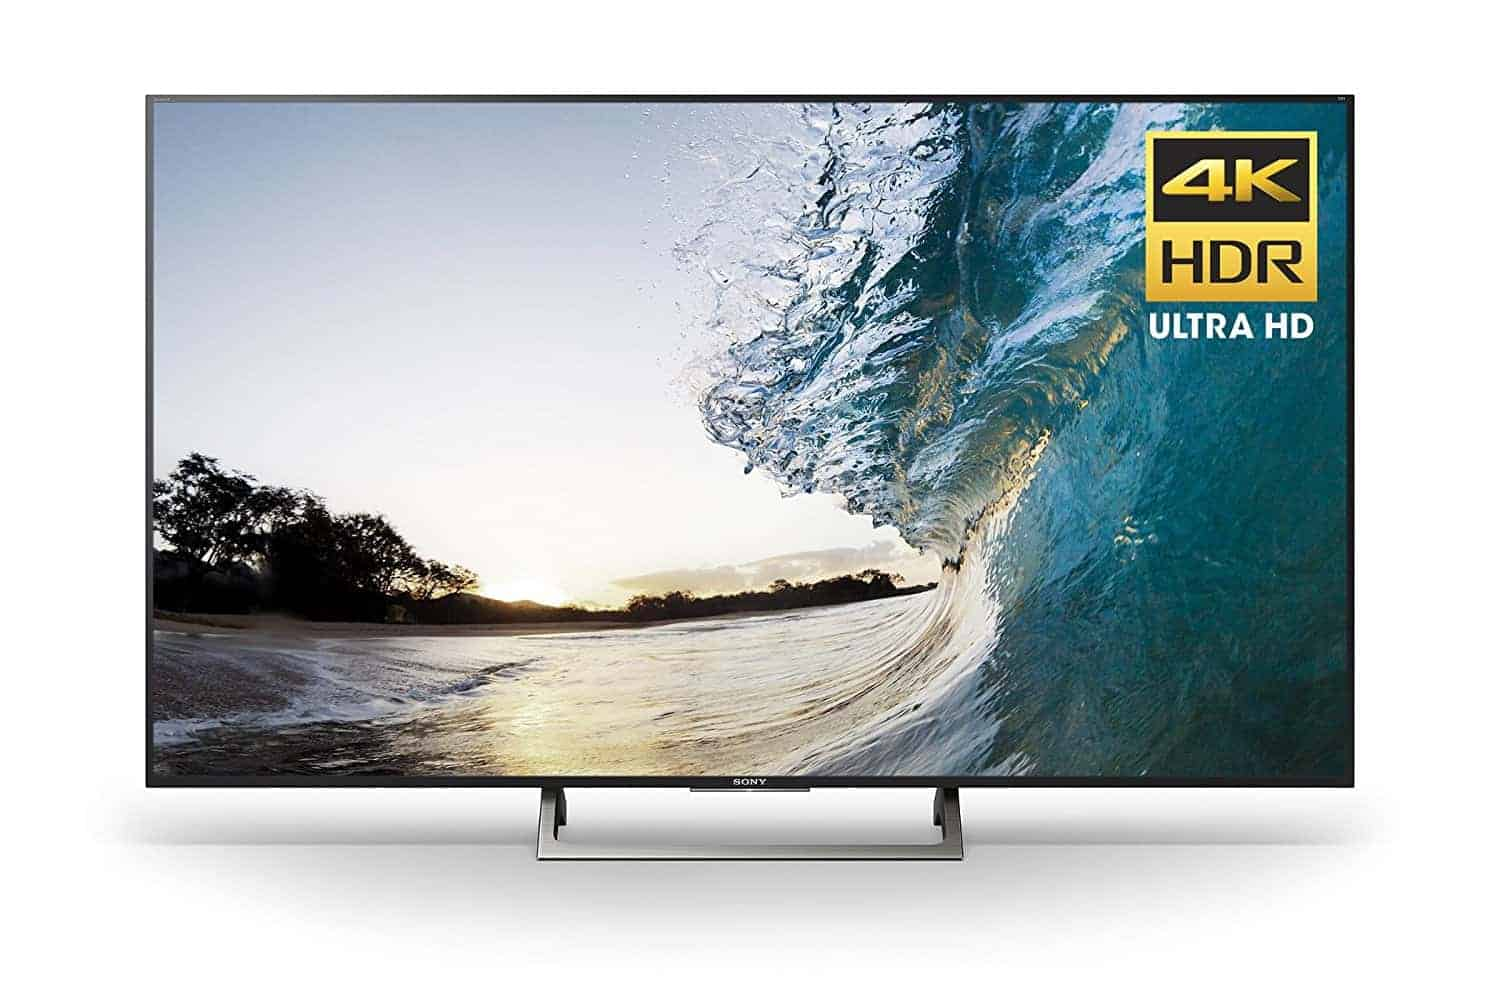 Sony XBR65X850E 65-Inch 4K Ultra HD Smart LED TV